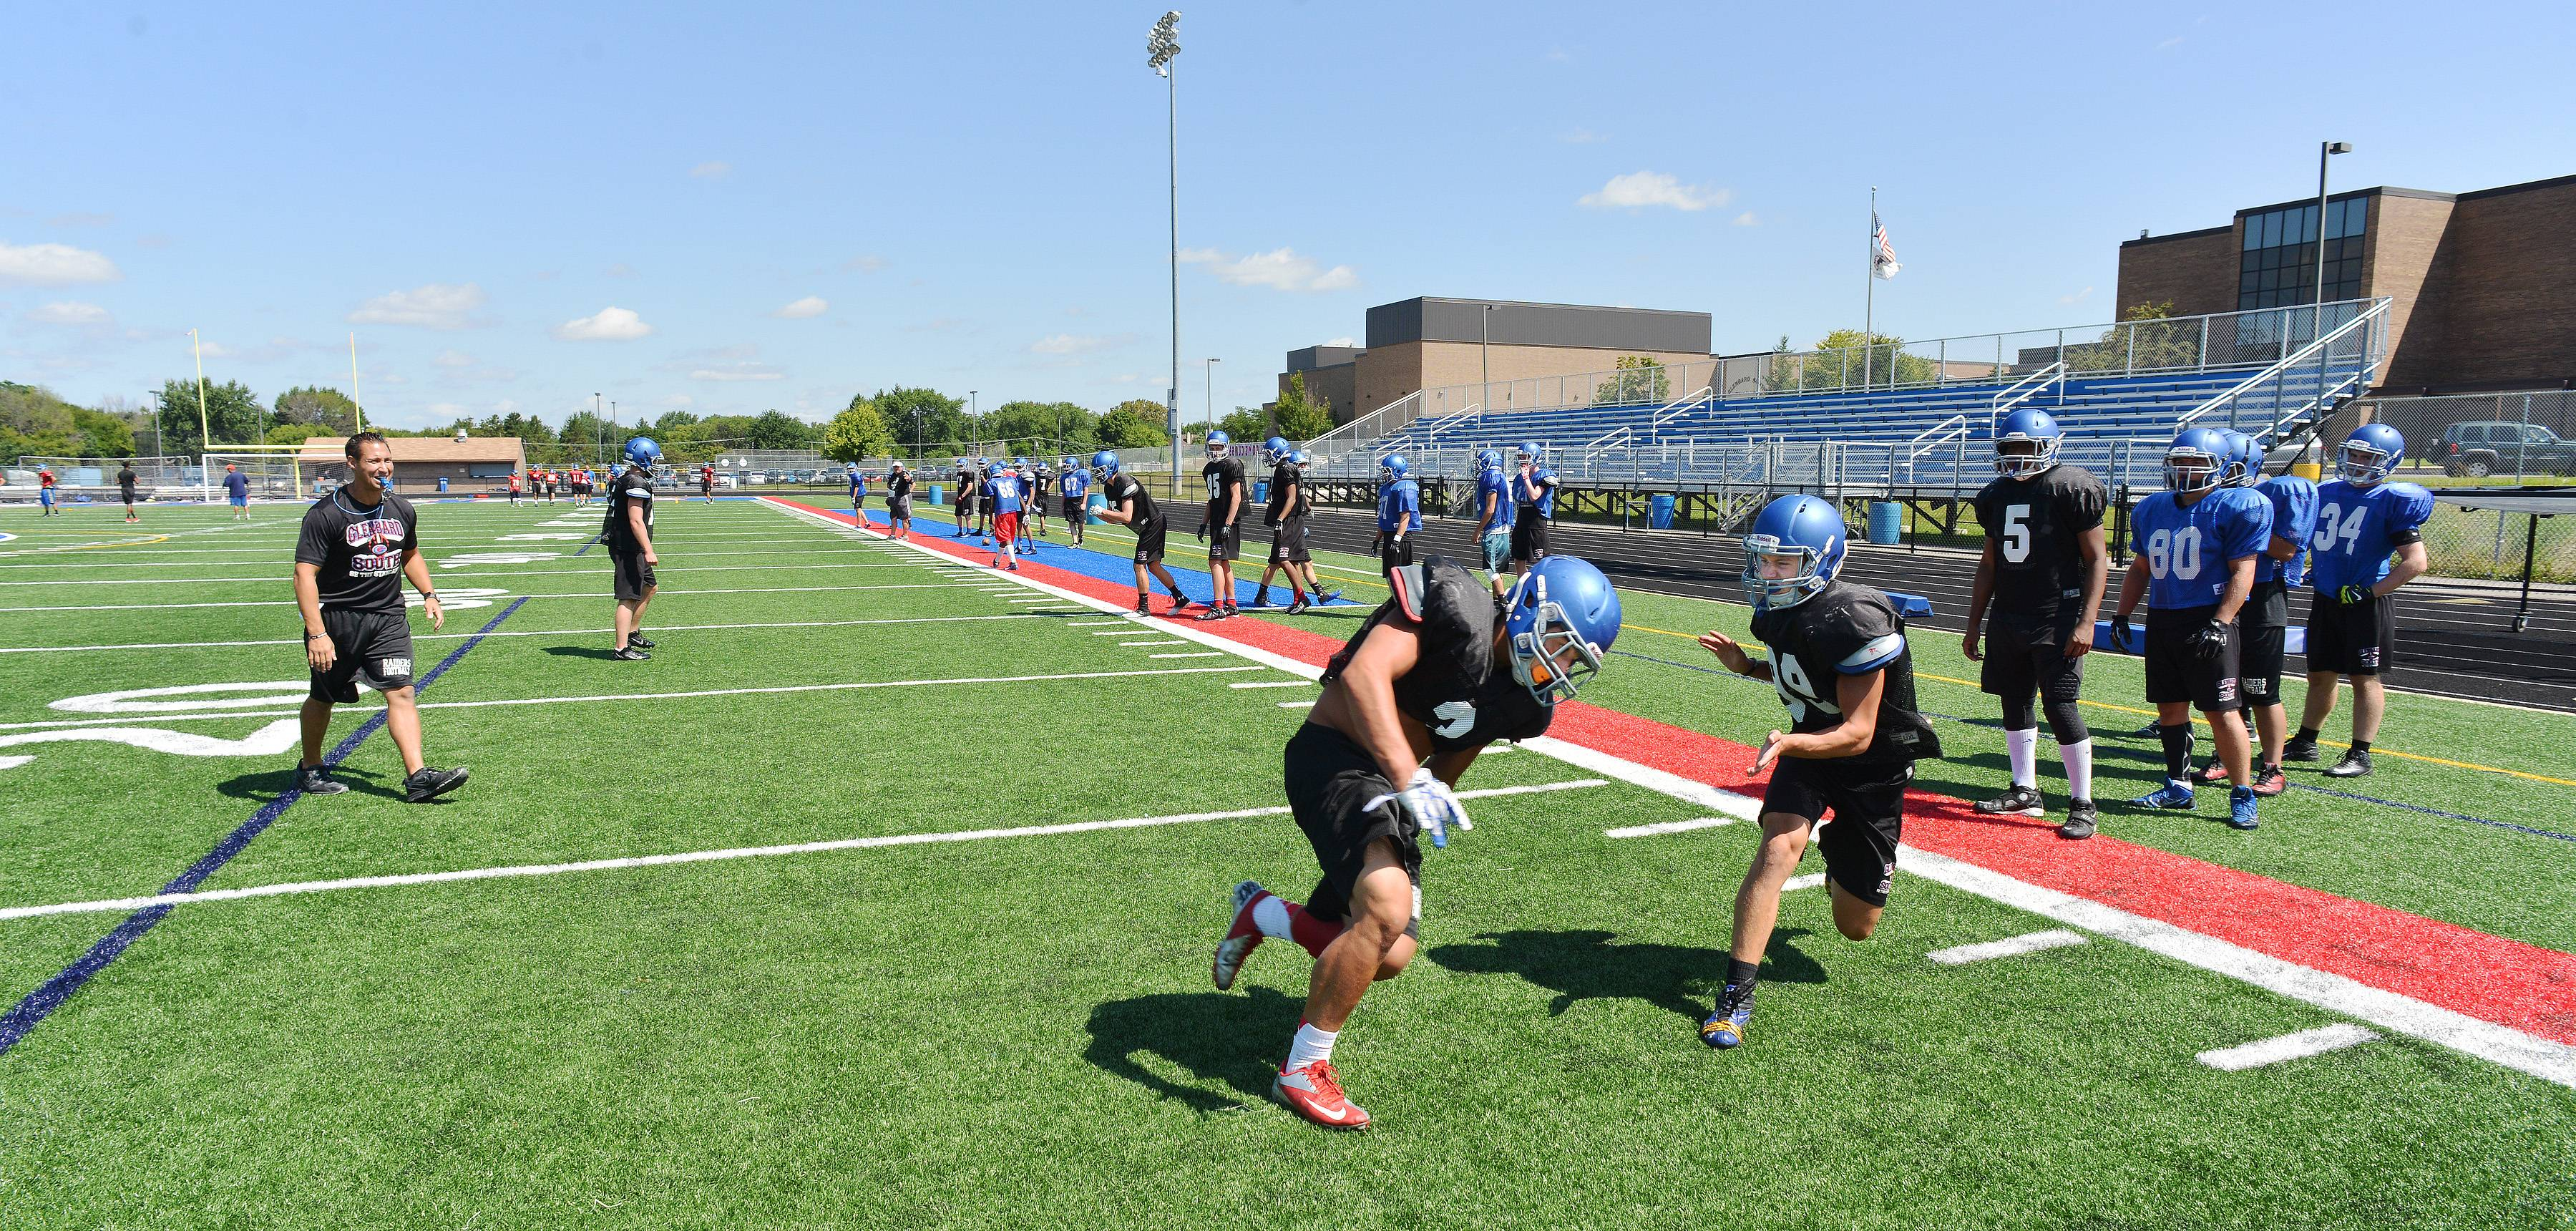 Scott Sanders/ssanders@dailyherald.com ¬ Glenbard South varsity football team works out Thursday morning. Running drills